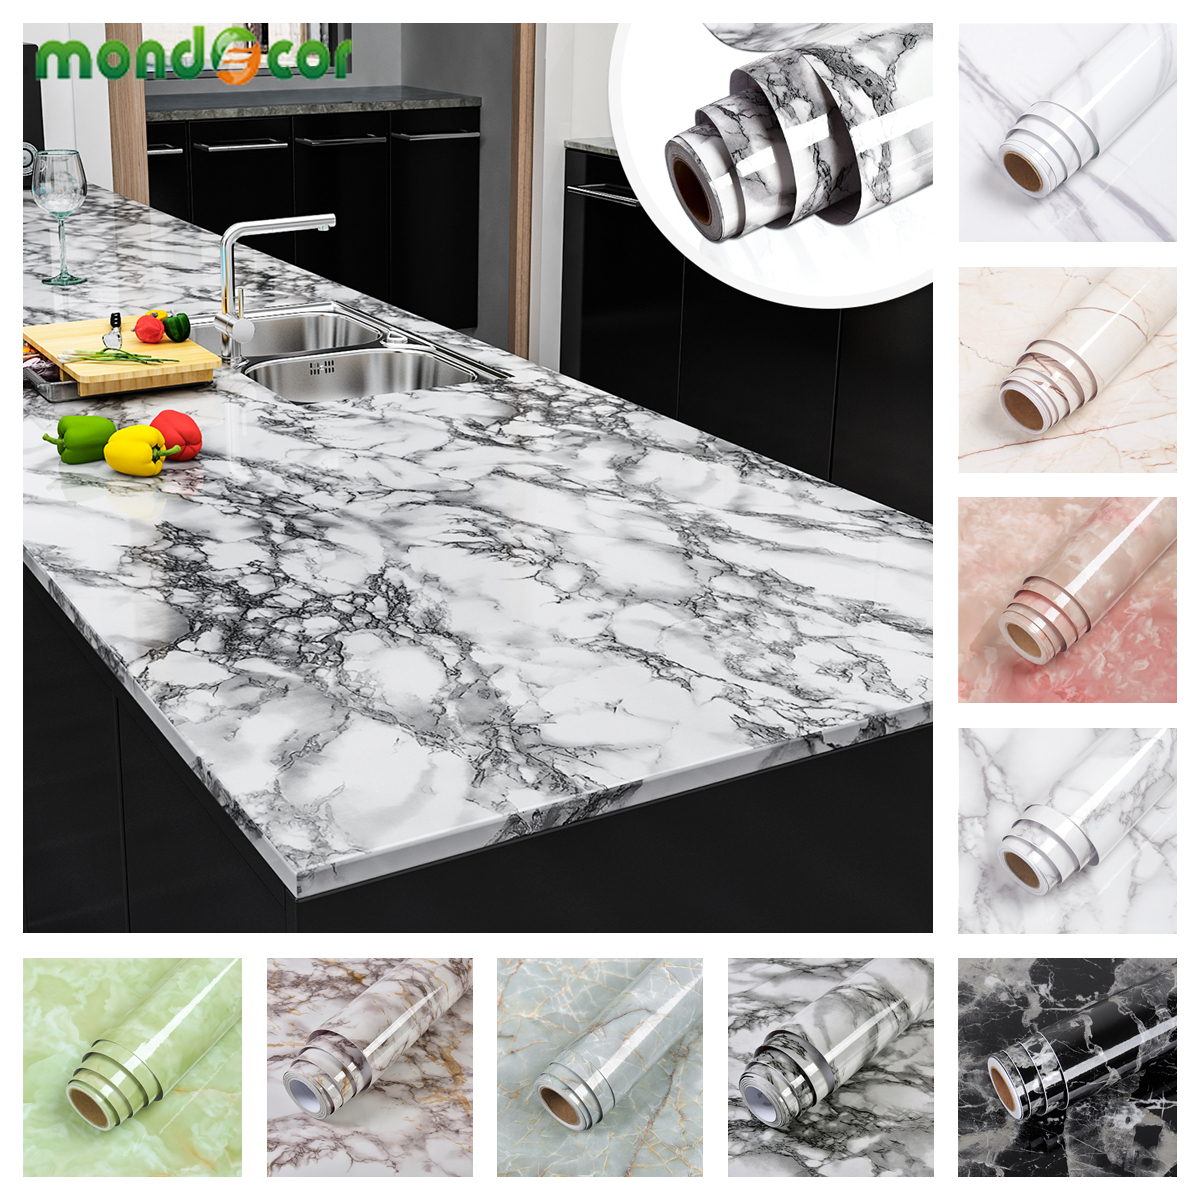 Marble Table Vinyl Wallpaper Self Adhesive Waterproof Wall Stickers for Bathroom Kitchen Furniture Renovation Removable Decals